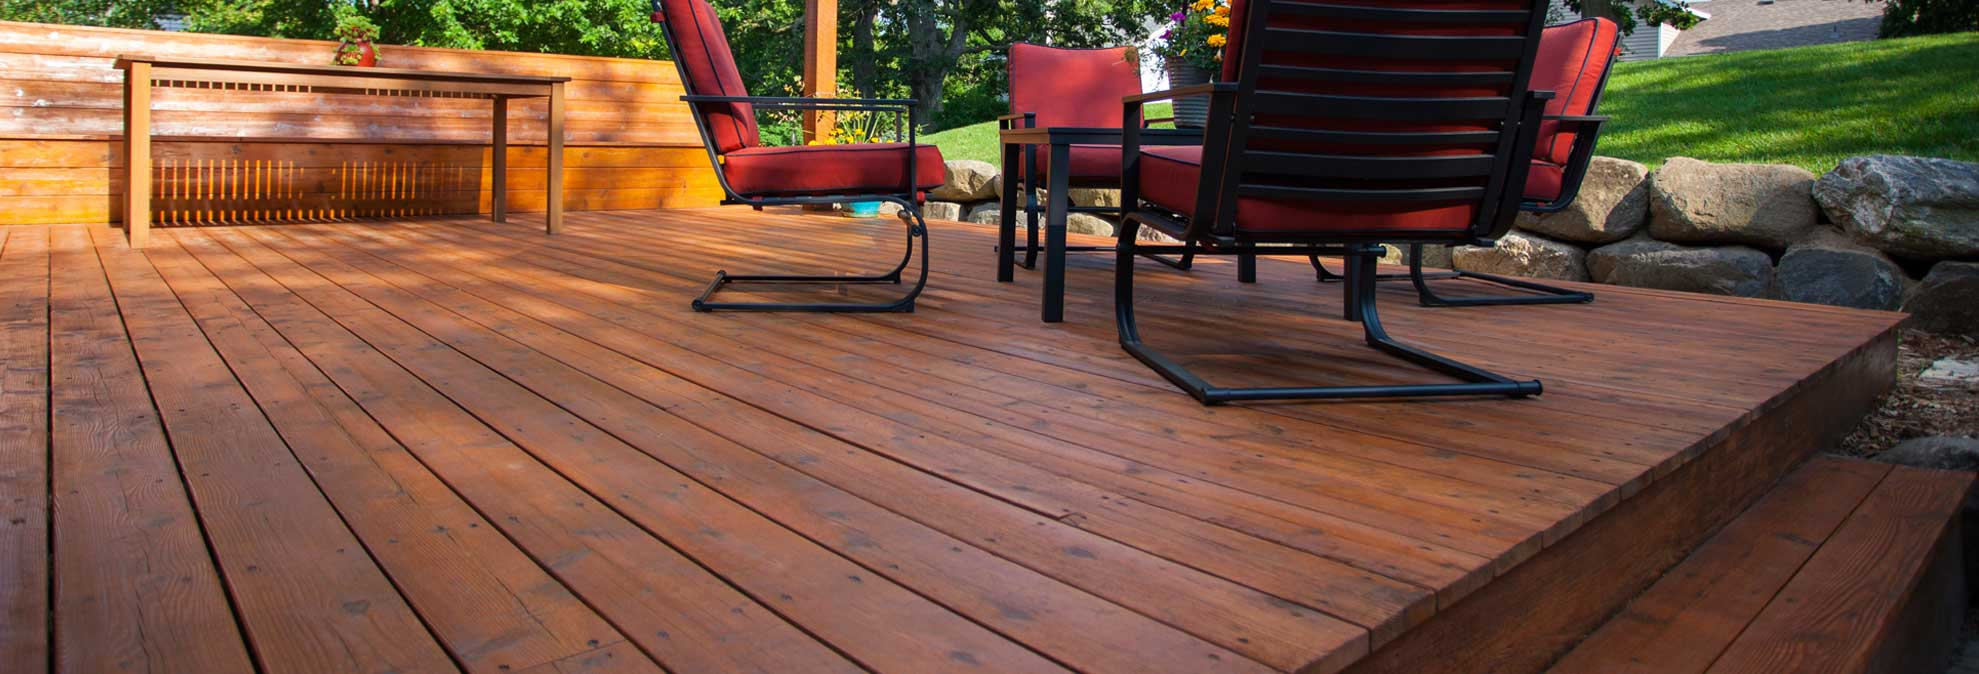 Best decking buying guide consumer reports for Best material for deck